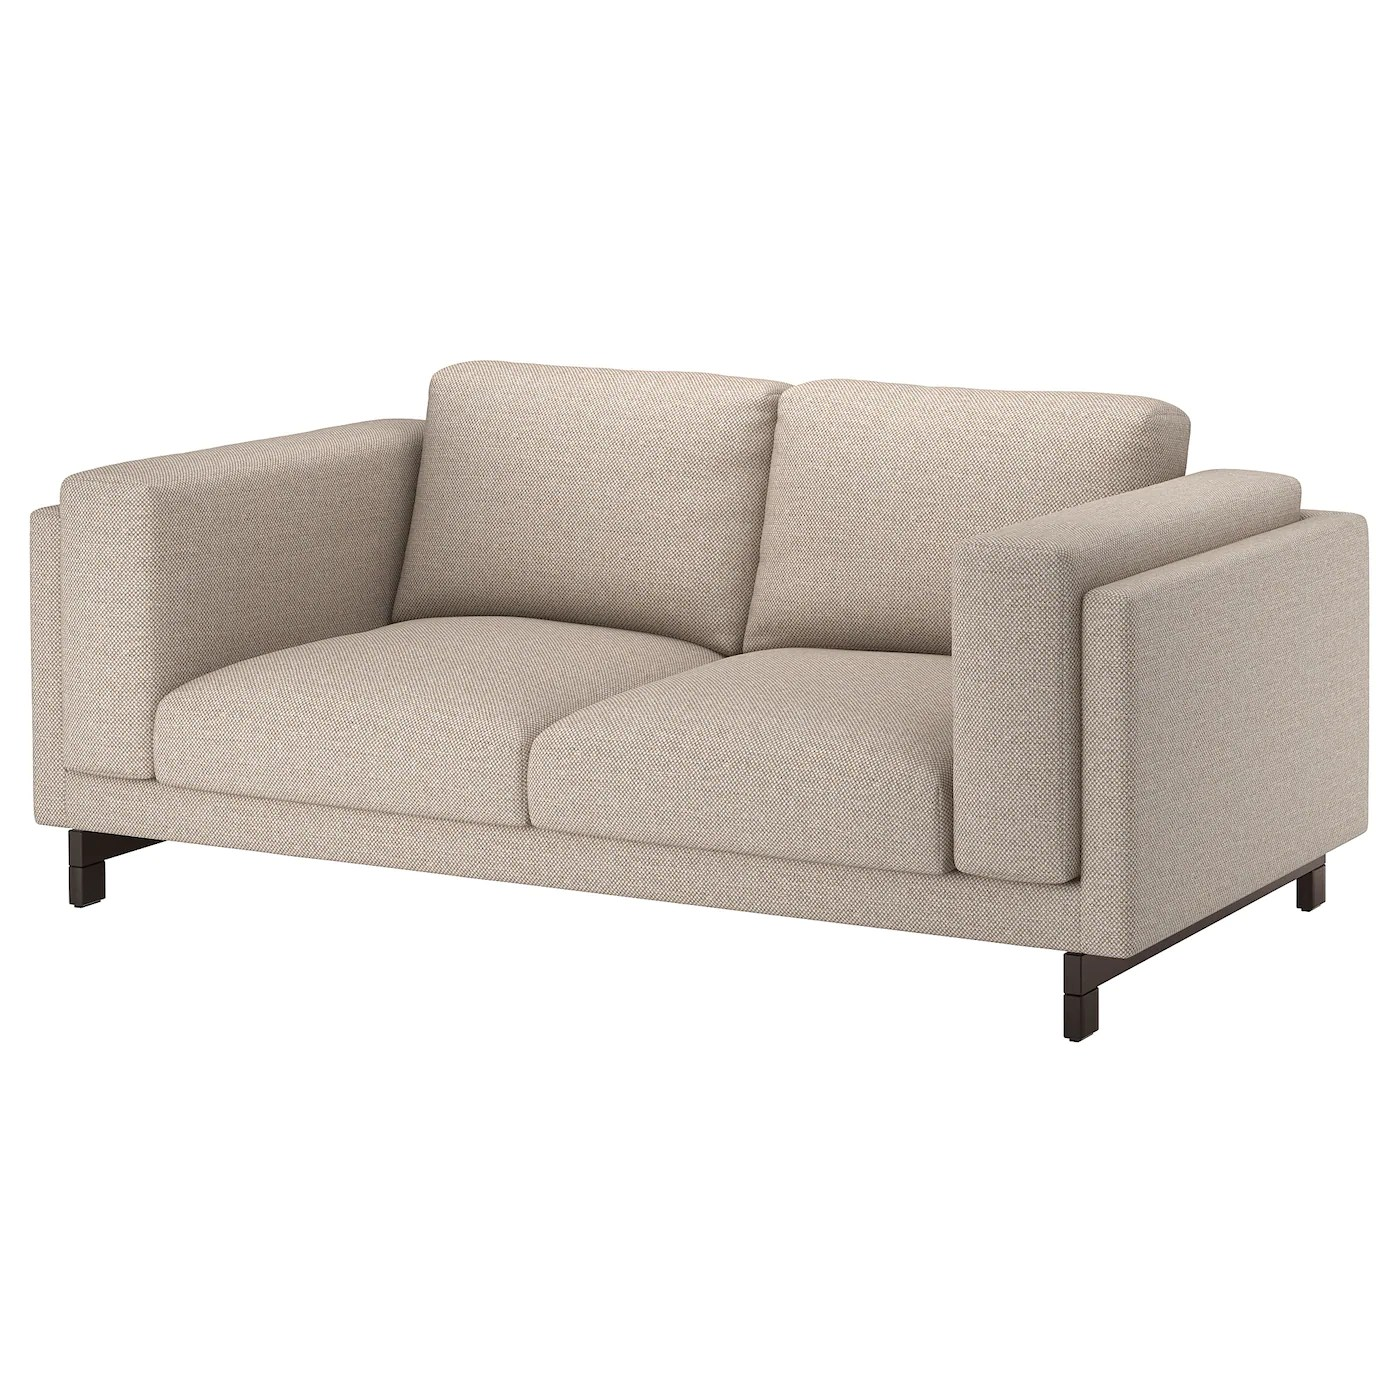 Sofa Ikea Nockeby Two Seat Sofa Lejde Dark Beige Wood